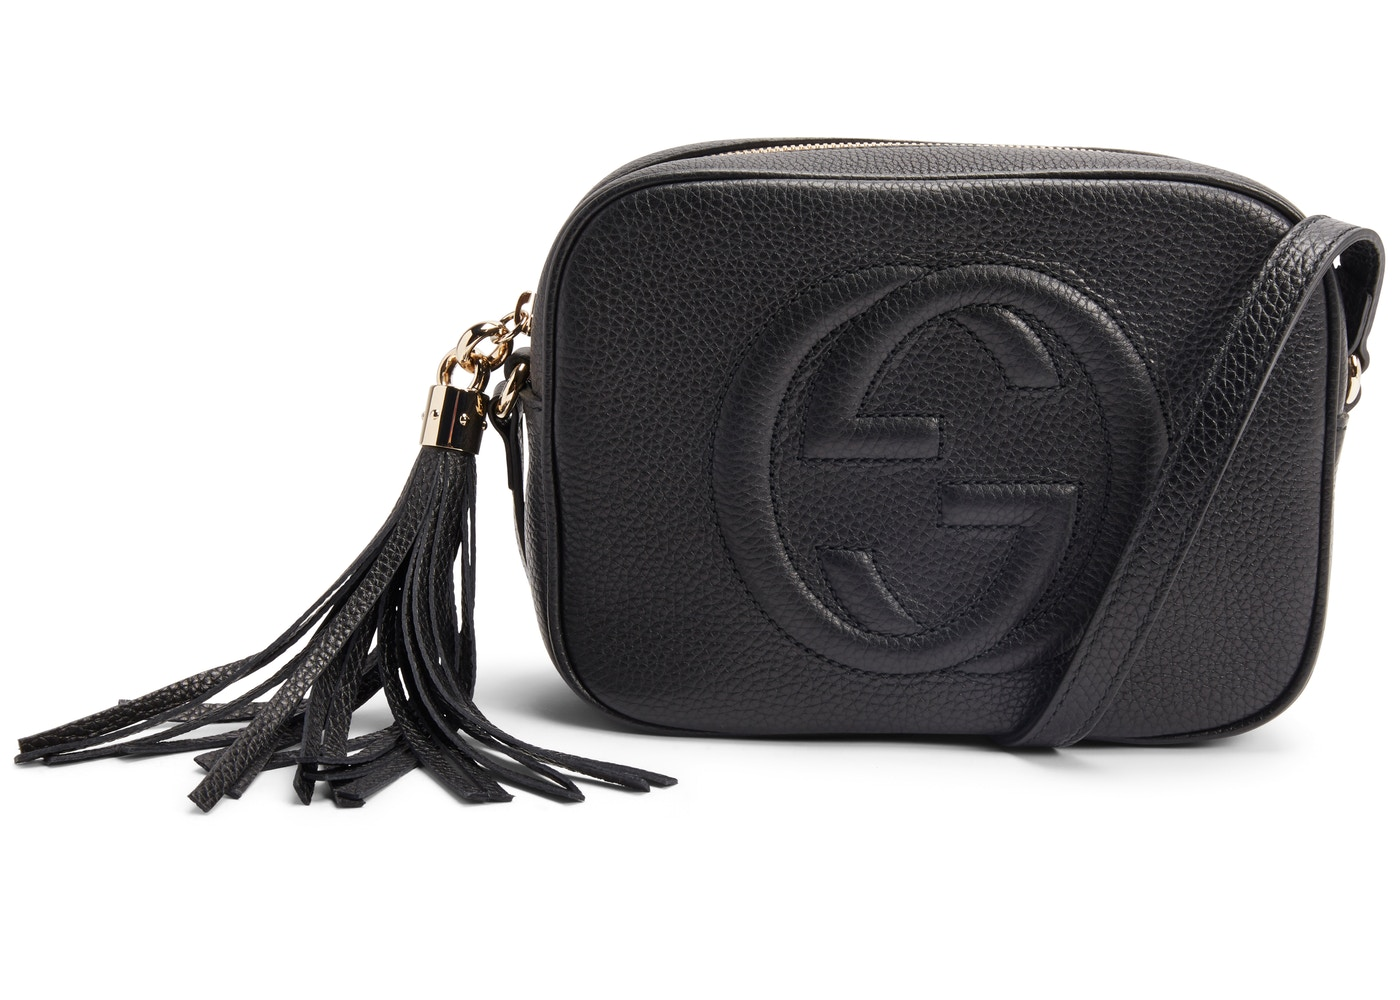 dbf2601644f Gucci Soho Disco Leather Small Black